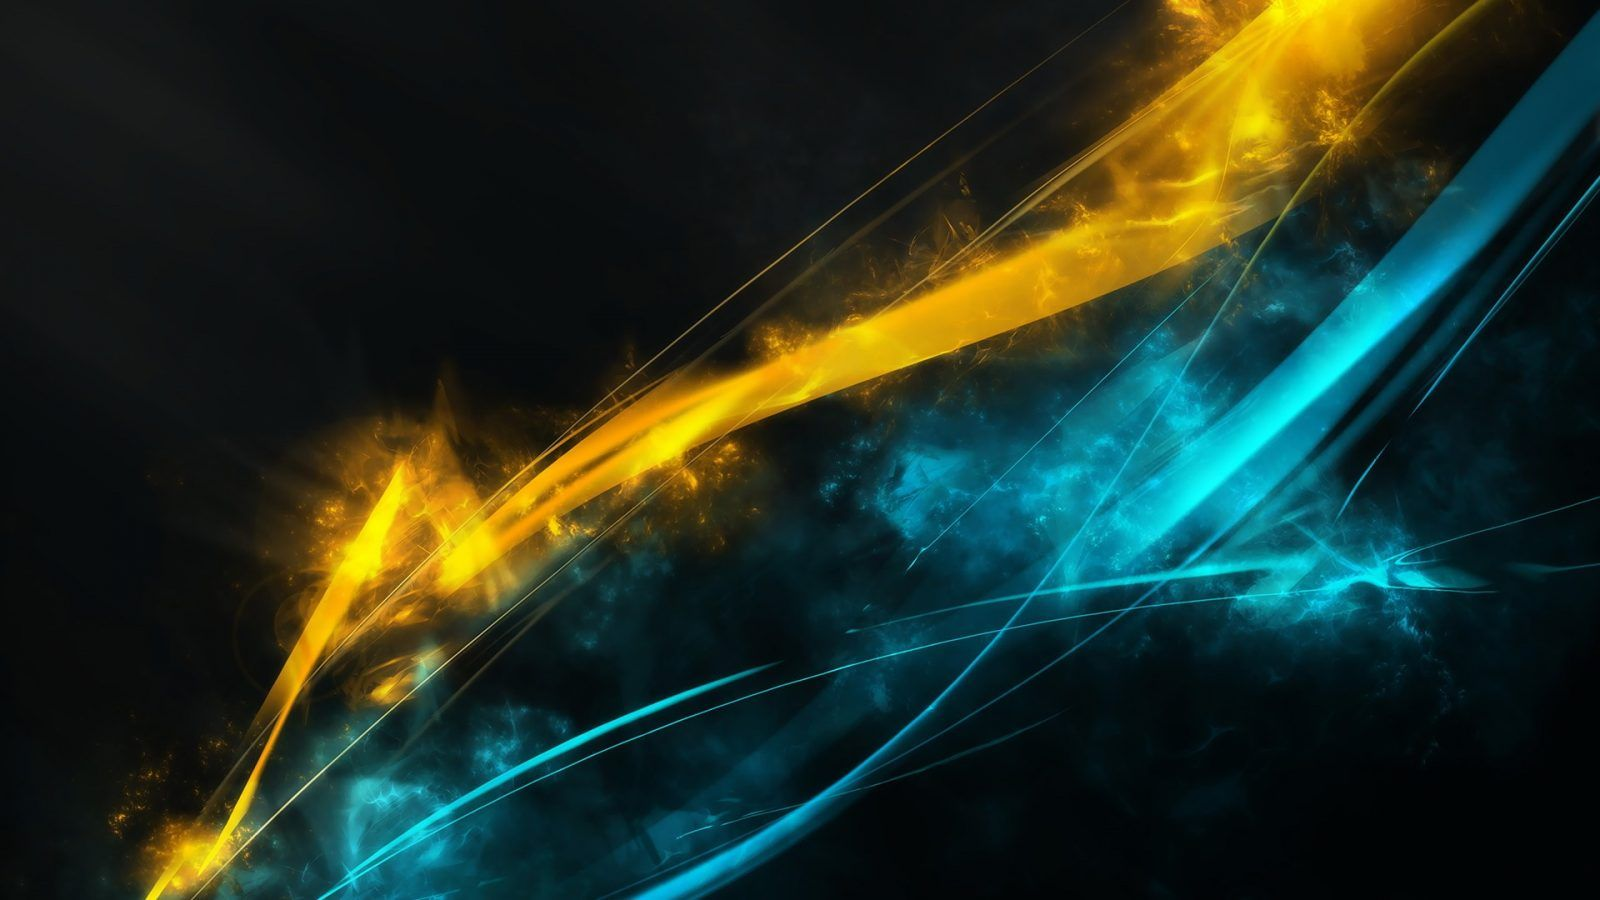 best abstract wallpapers for android | best abstract wallpapers for